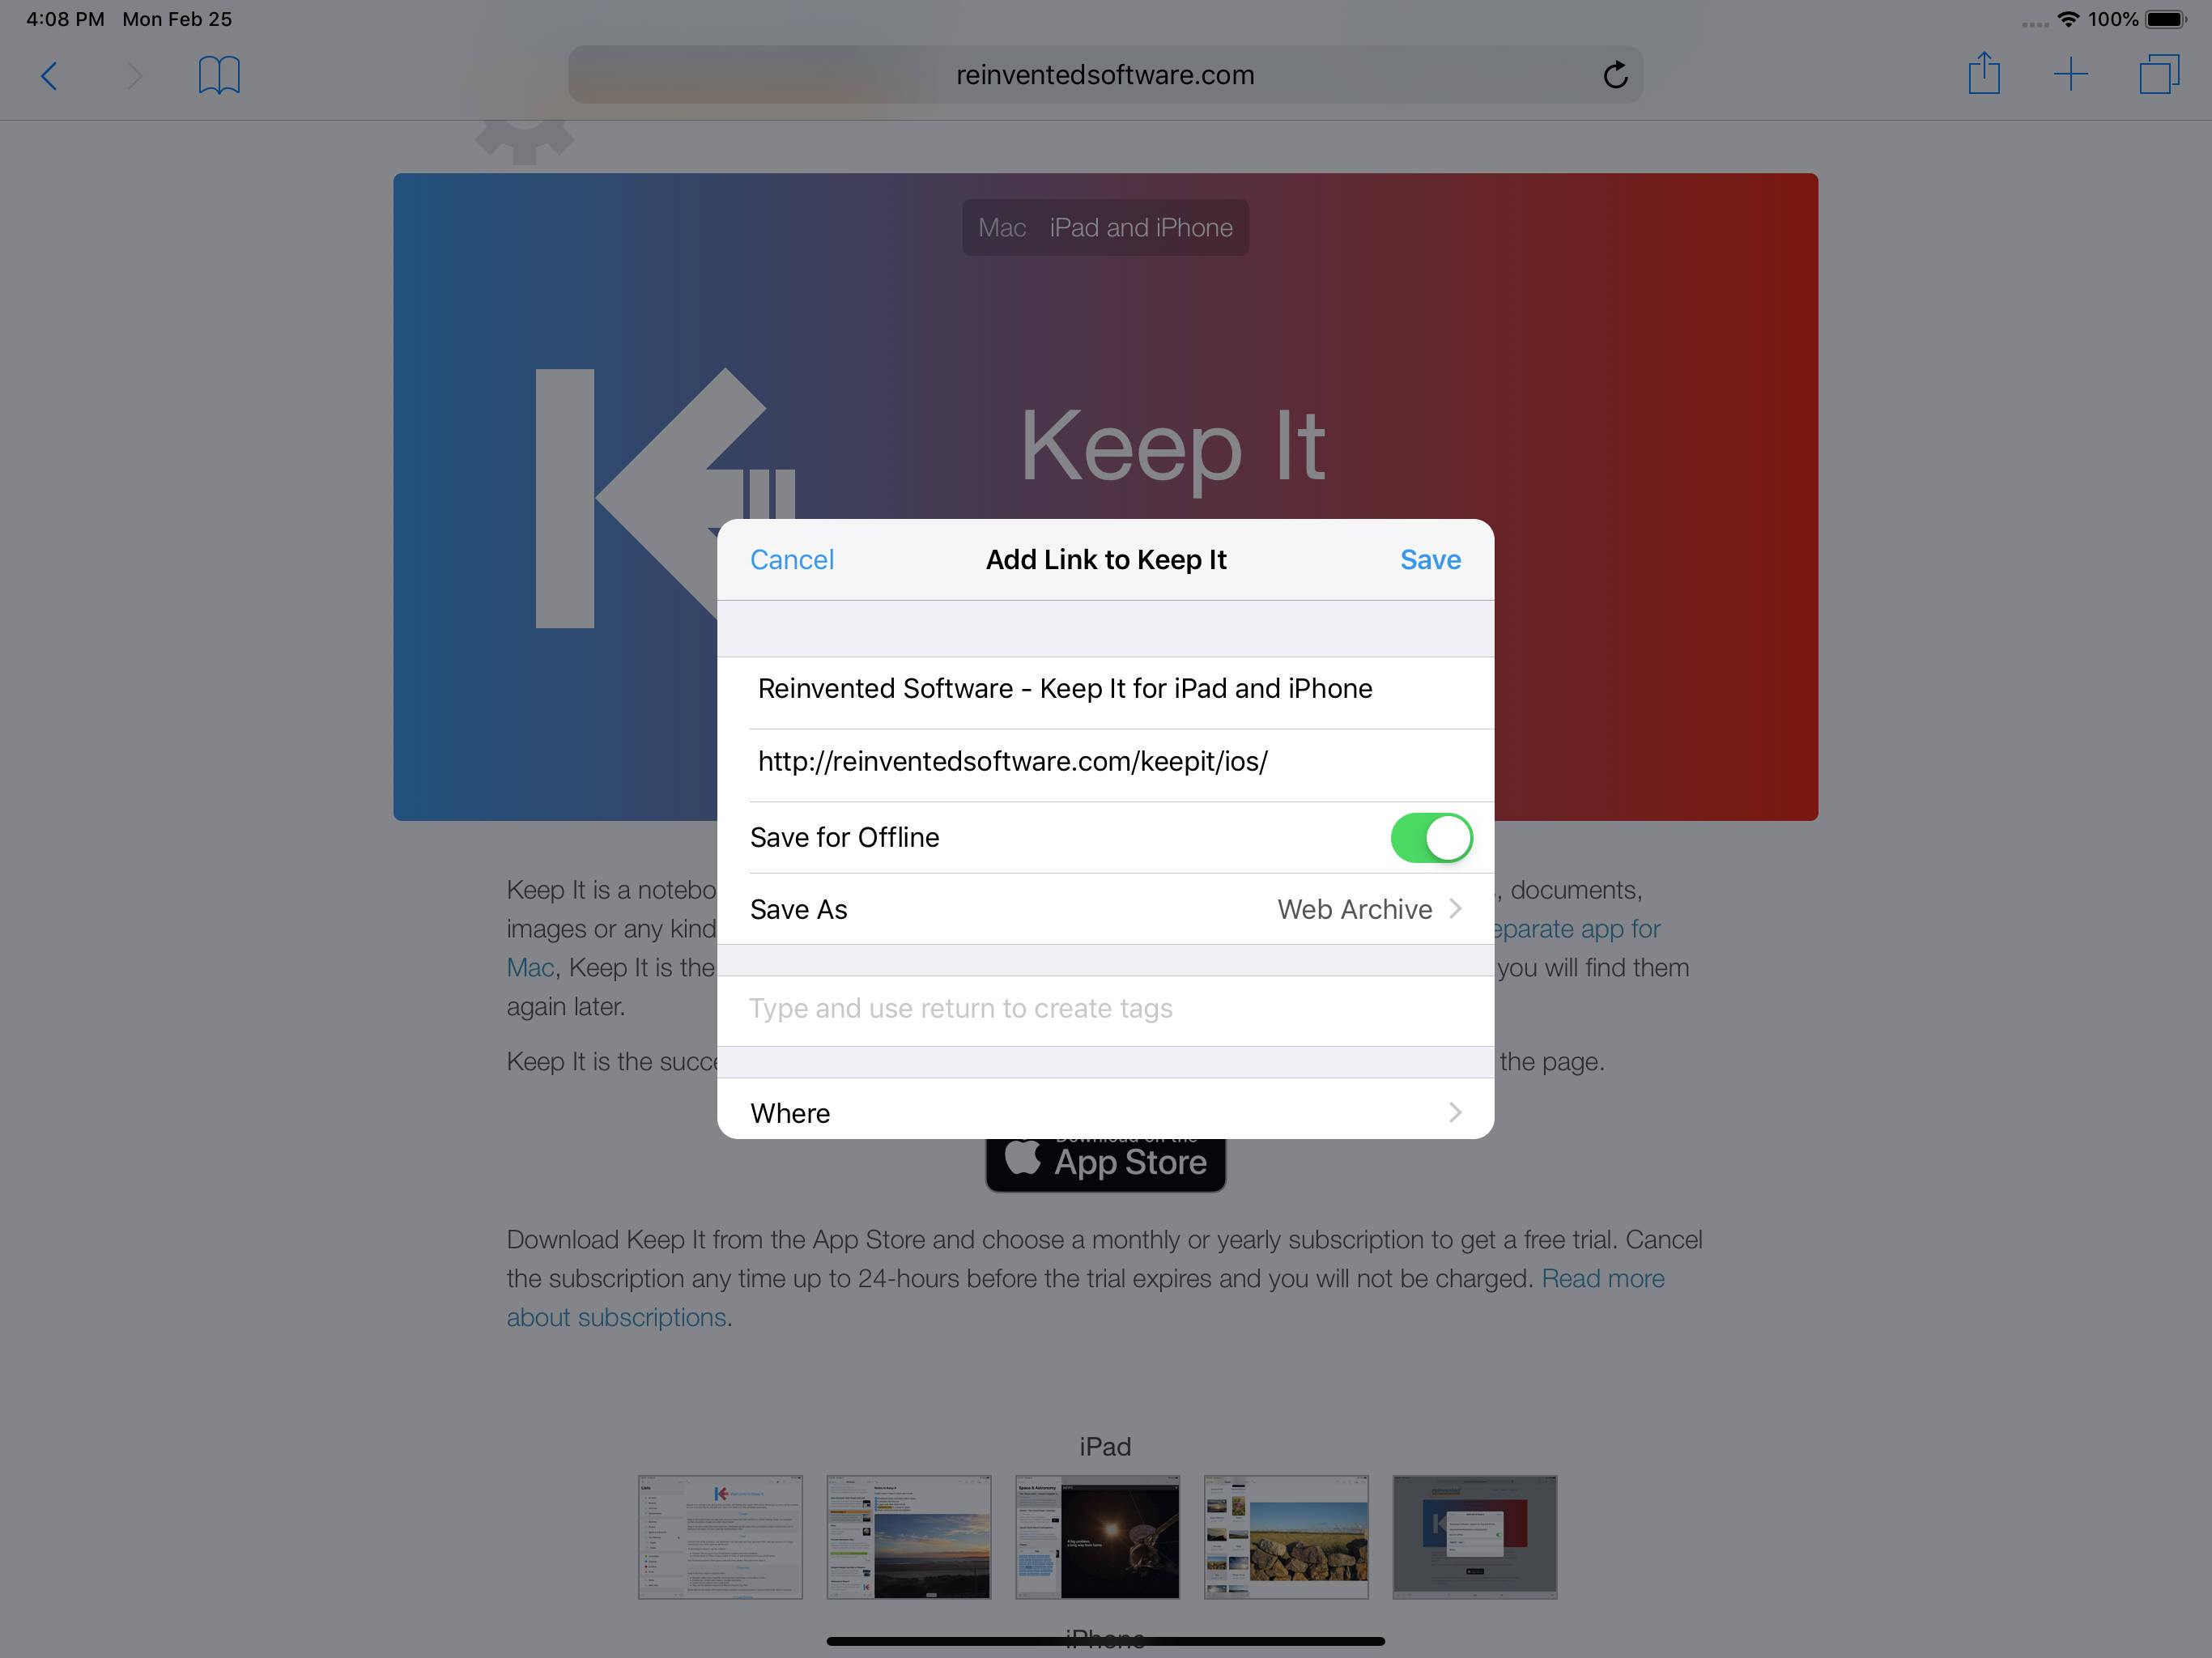 Keep It 1.6 for iPad, showing how to save a web link as a web archive in Safari